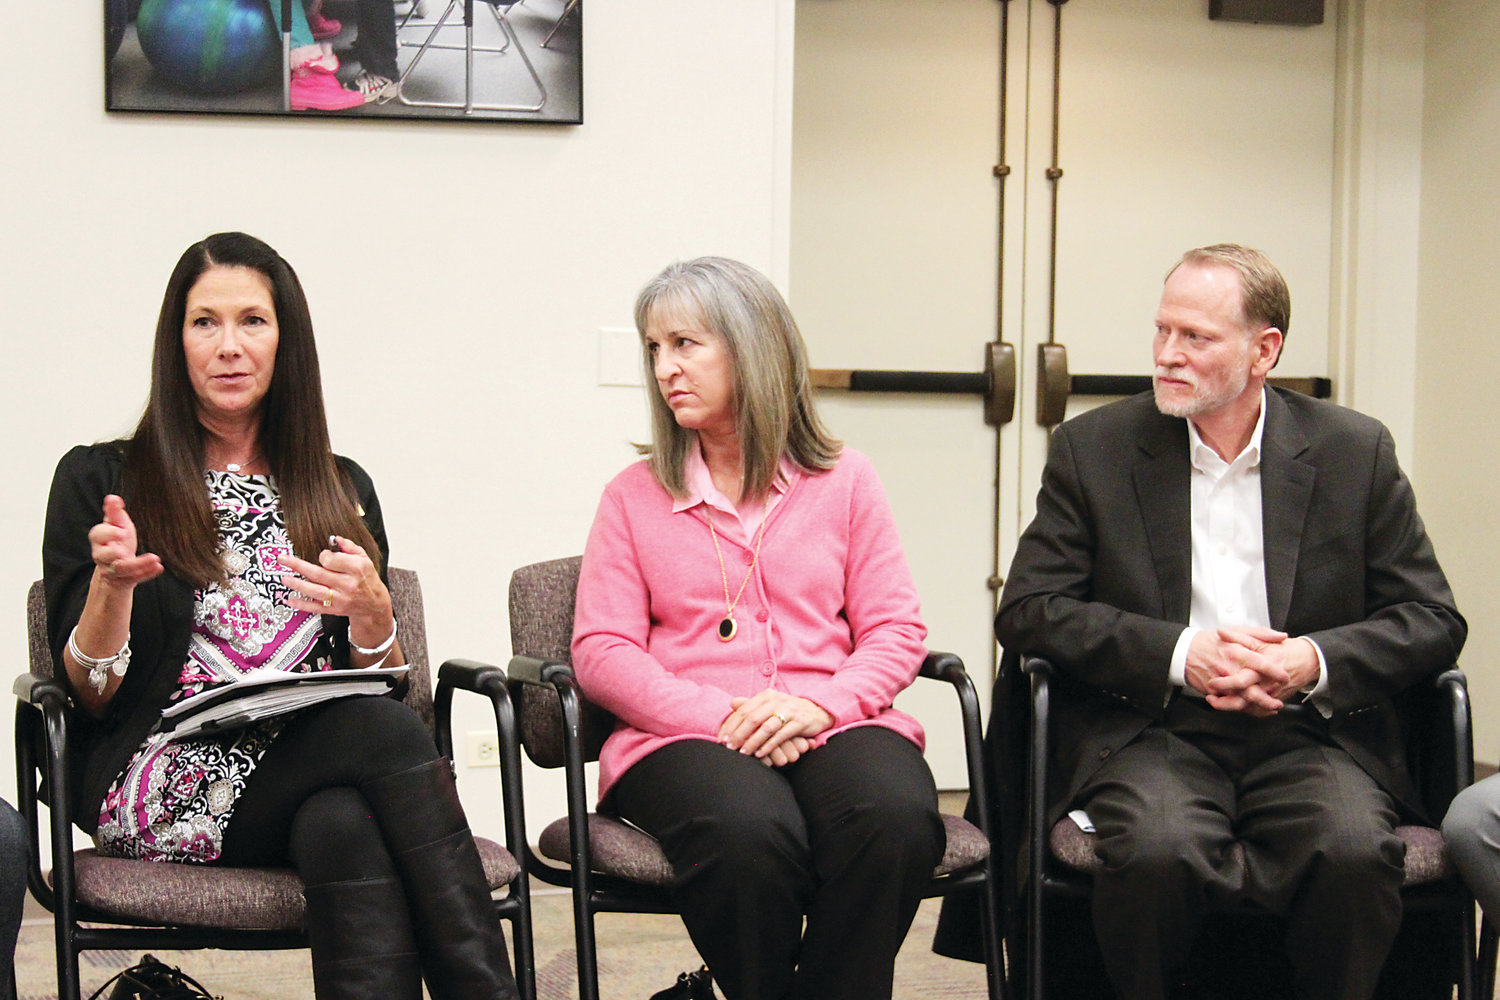 Arapahoe High School principal Natalie Pramenko, left, speaks at a Littleton Public Schools roundtable on Dec. 10. Next to her are Desiree and Michael Davis, whose daughter Claire was killed by a classmate in 2013.